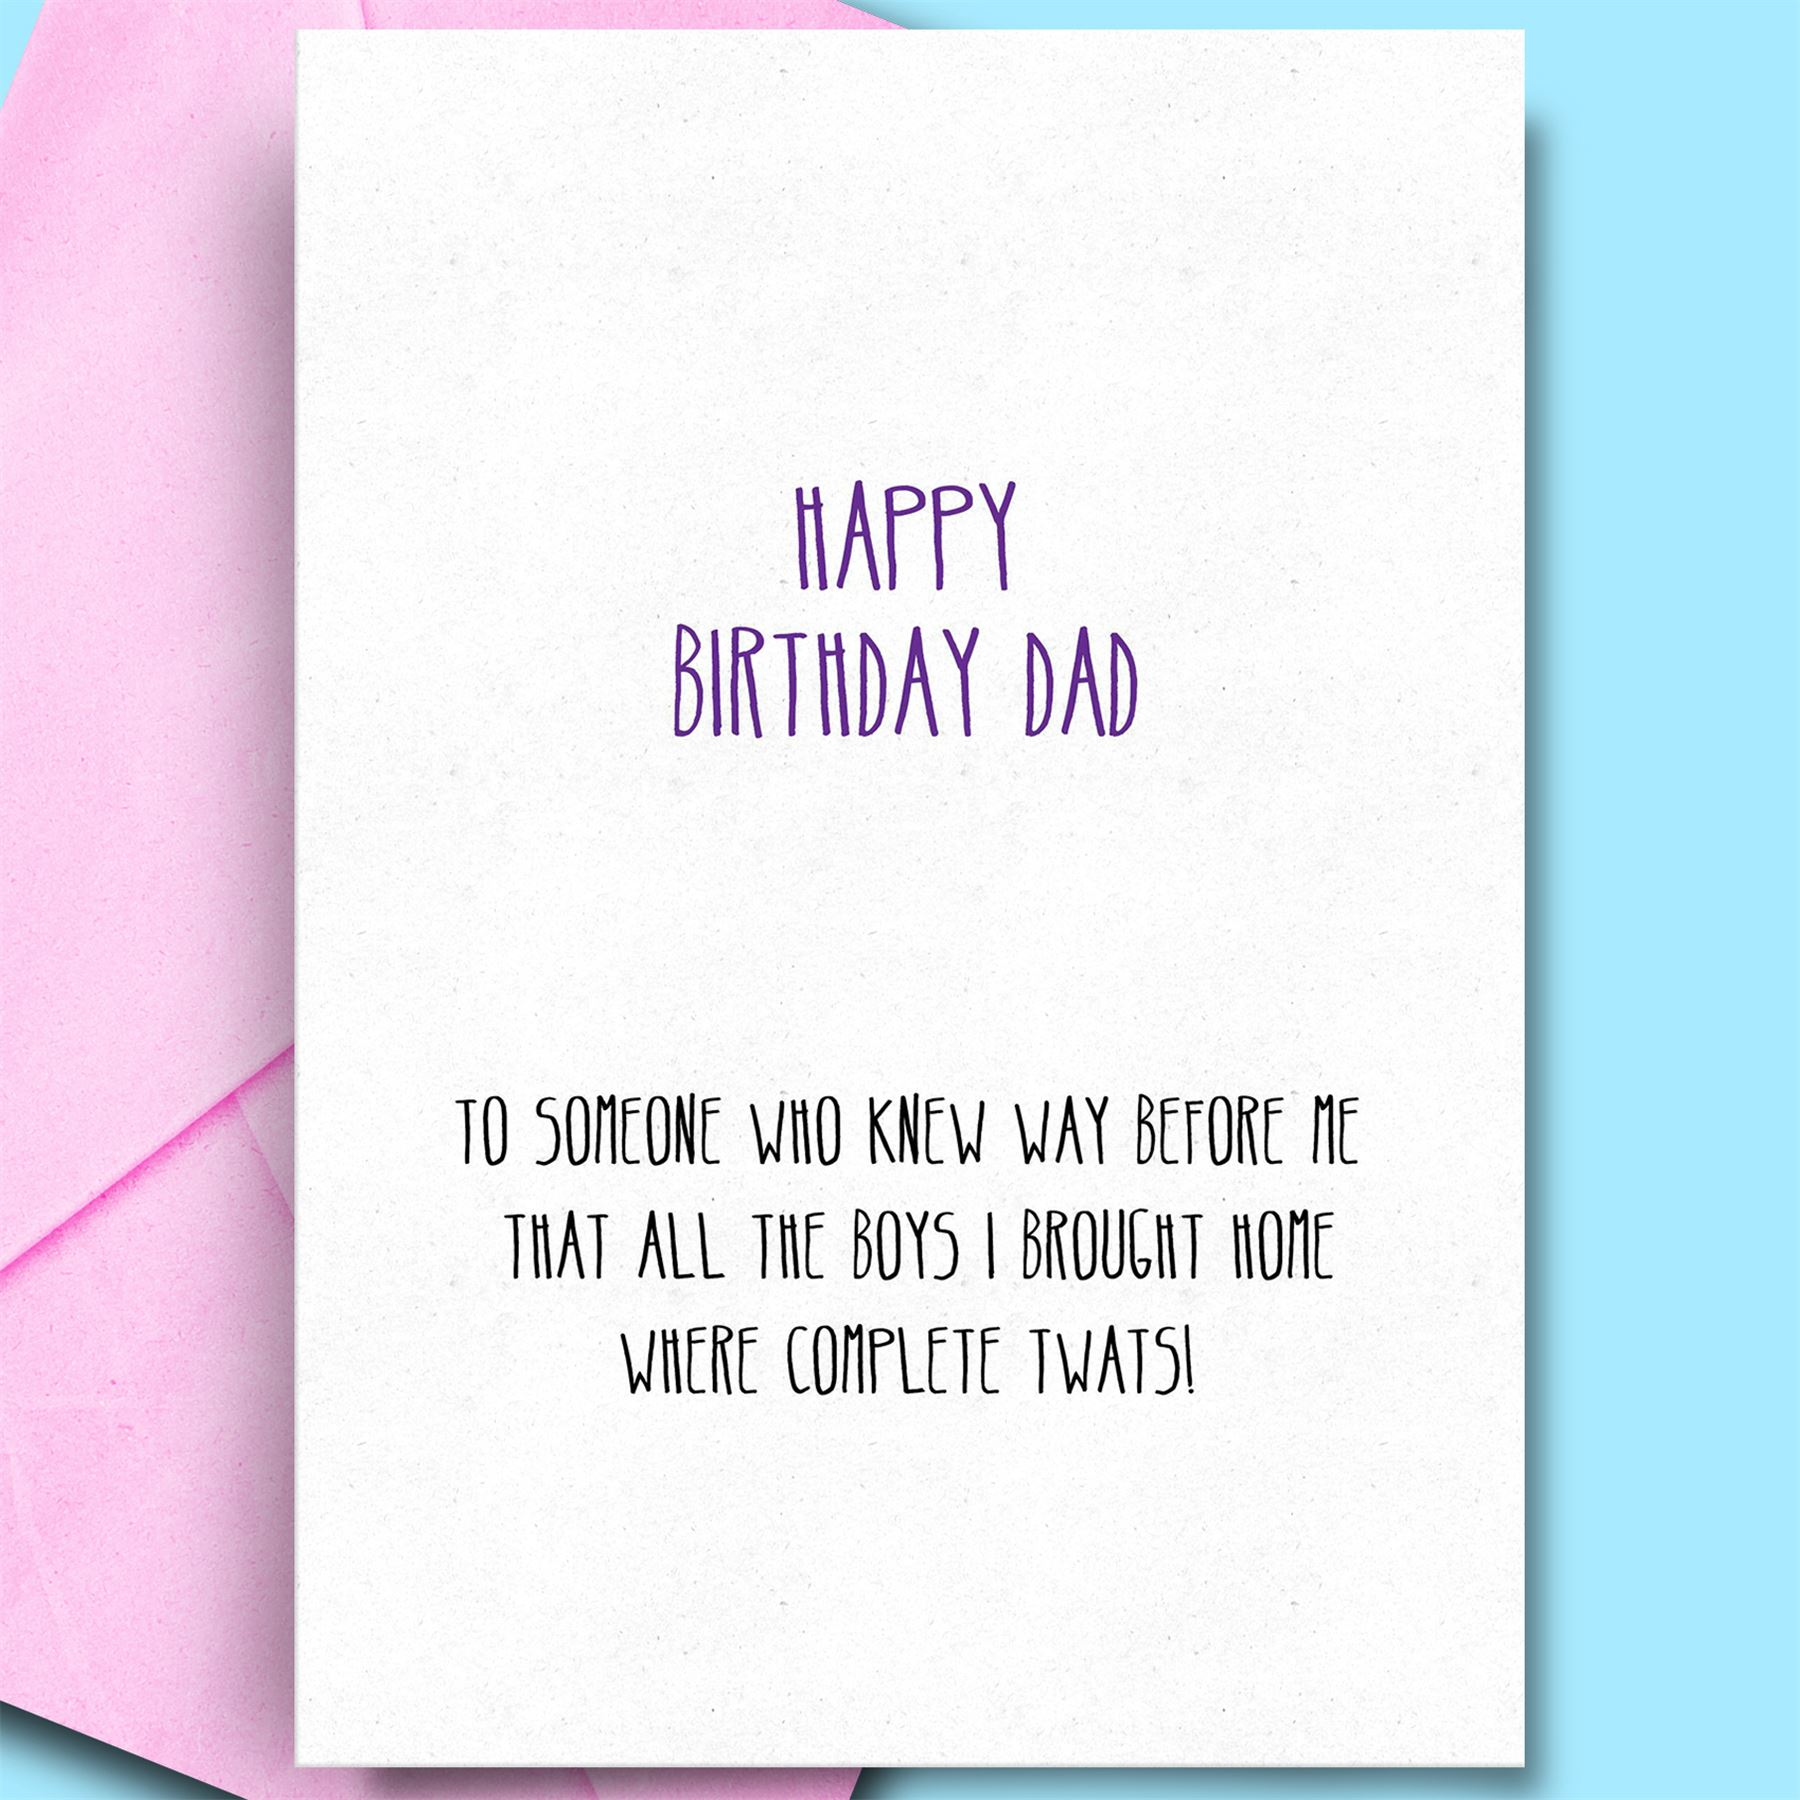 Details About Birthday Wishes For Father From Daughter Son Funny Rude Cards